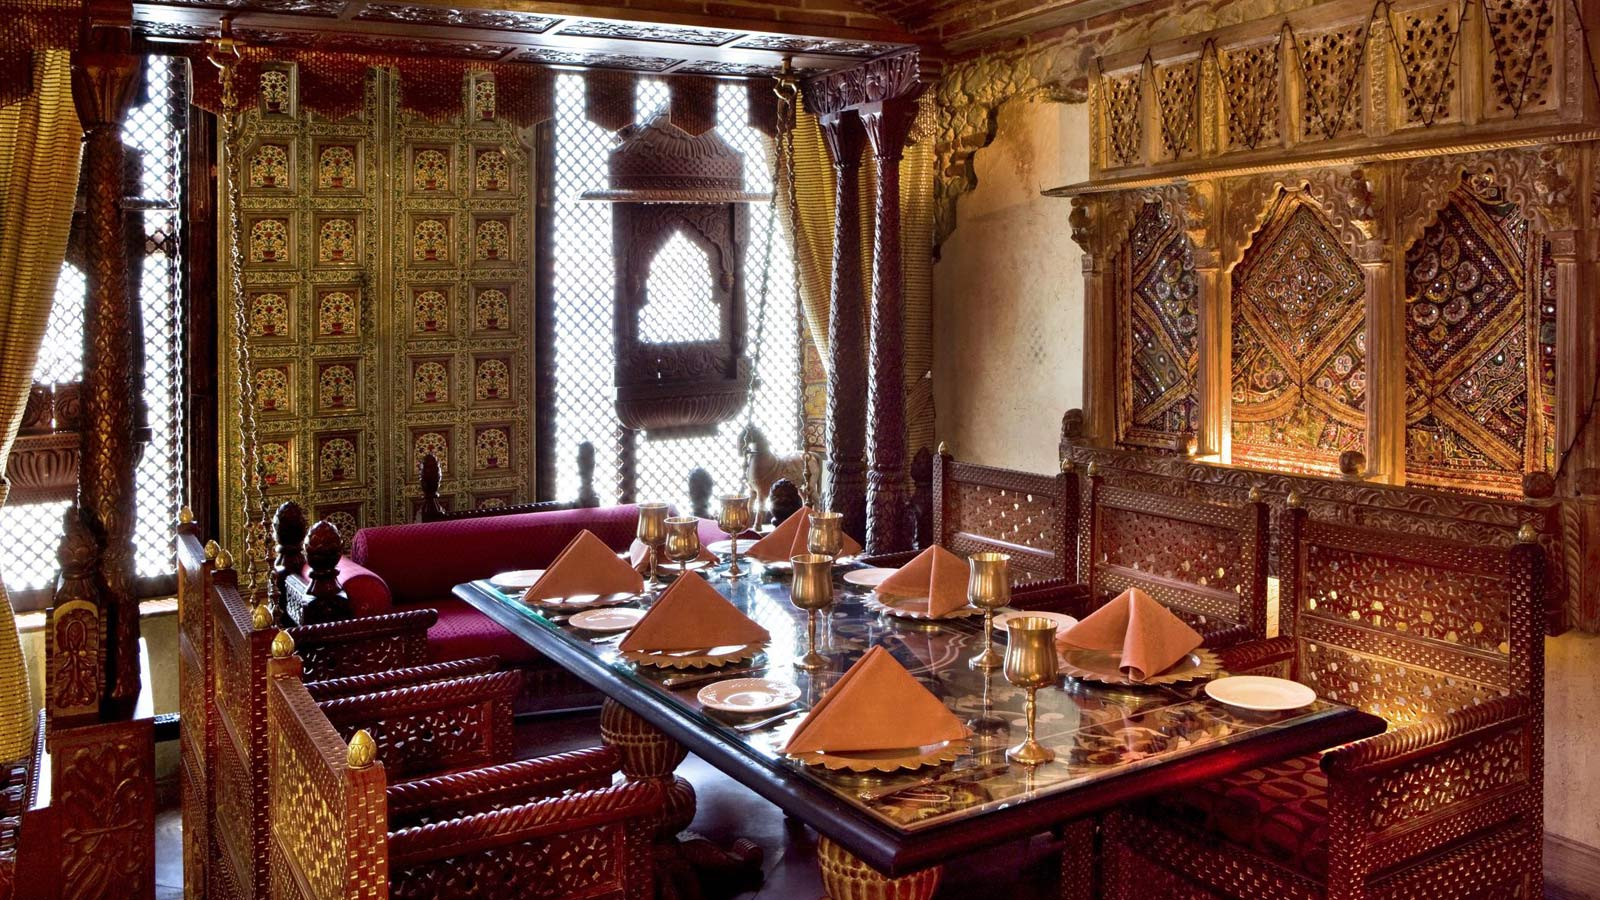 Antique Bazaar Authentic Indian Restaurant Award Wining Indian Restaurant Bur Dubai Four